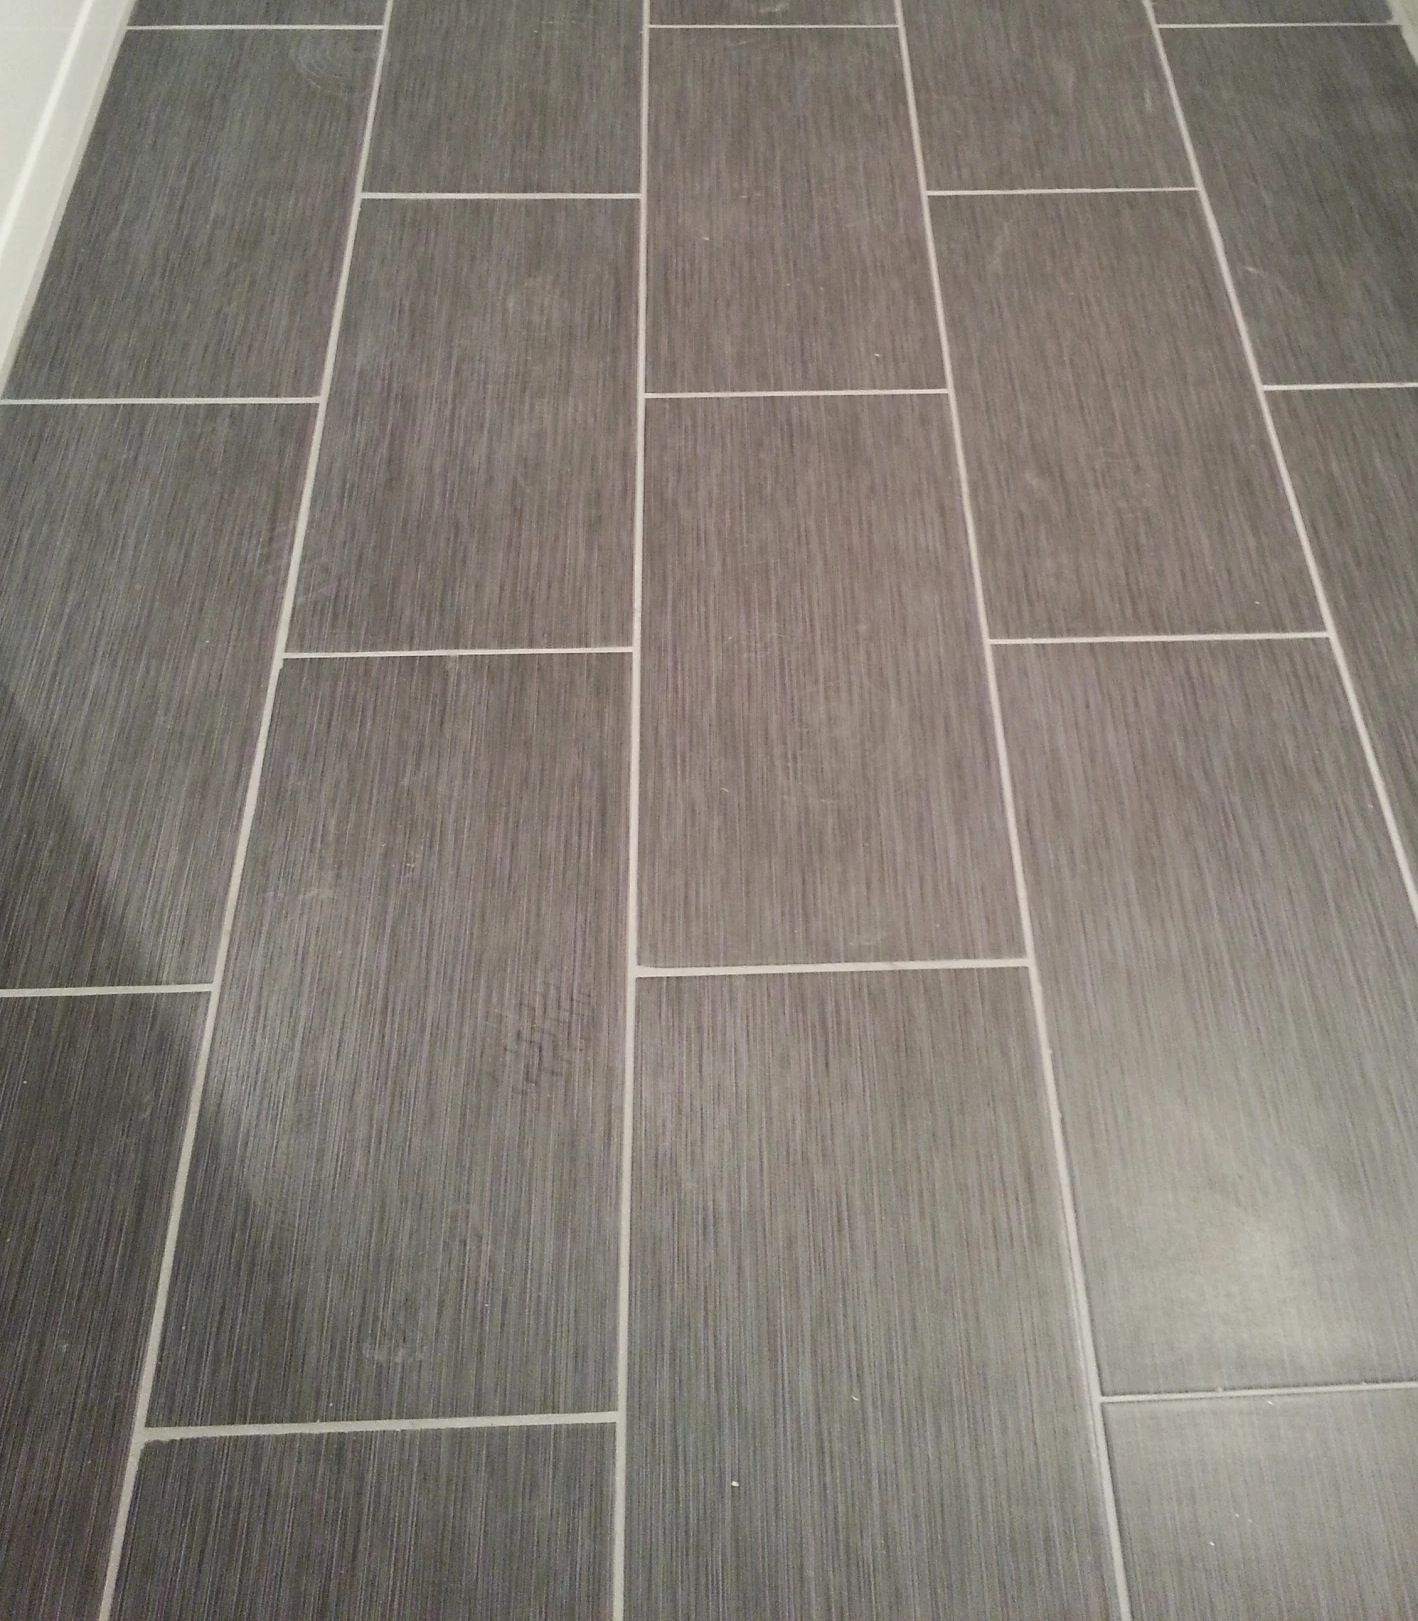 Home Depot Metro Gris 12x24 Tile In My Bathroom! | Home Depot Bathroom Tile, Home Depot Bathroom, Bathroom Floor Tiles